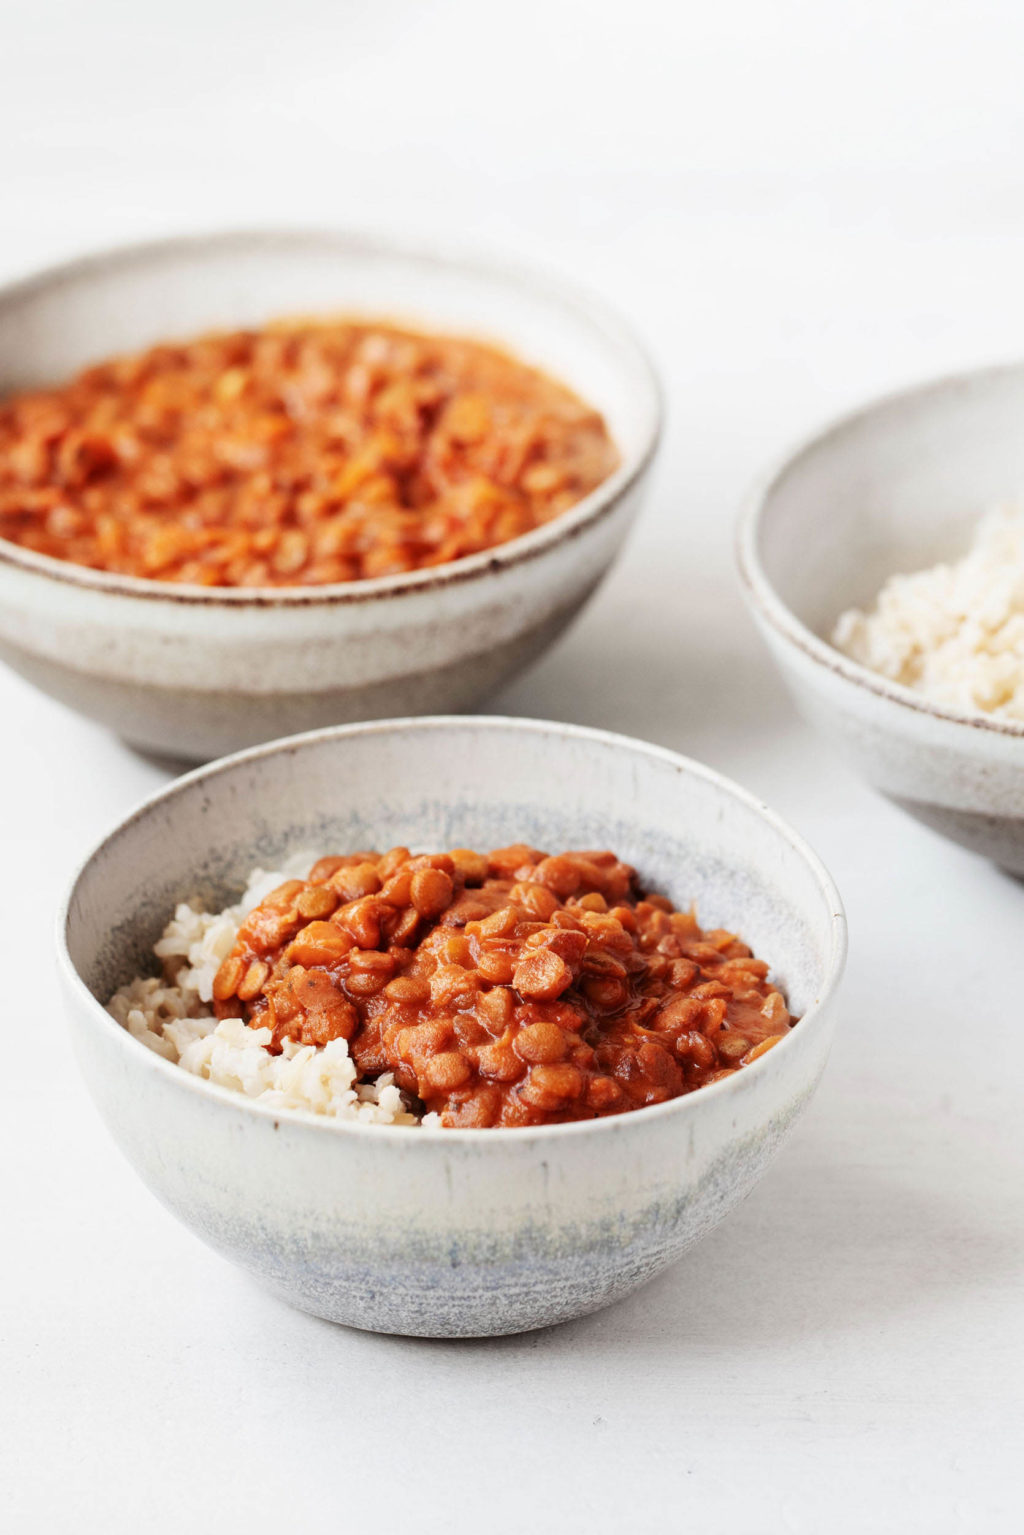 Two ceramic bowls have been piled with masala spiced, cooked lentils. Another bowl in the backdrop is filled with cooked brown rice.